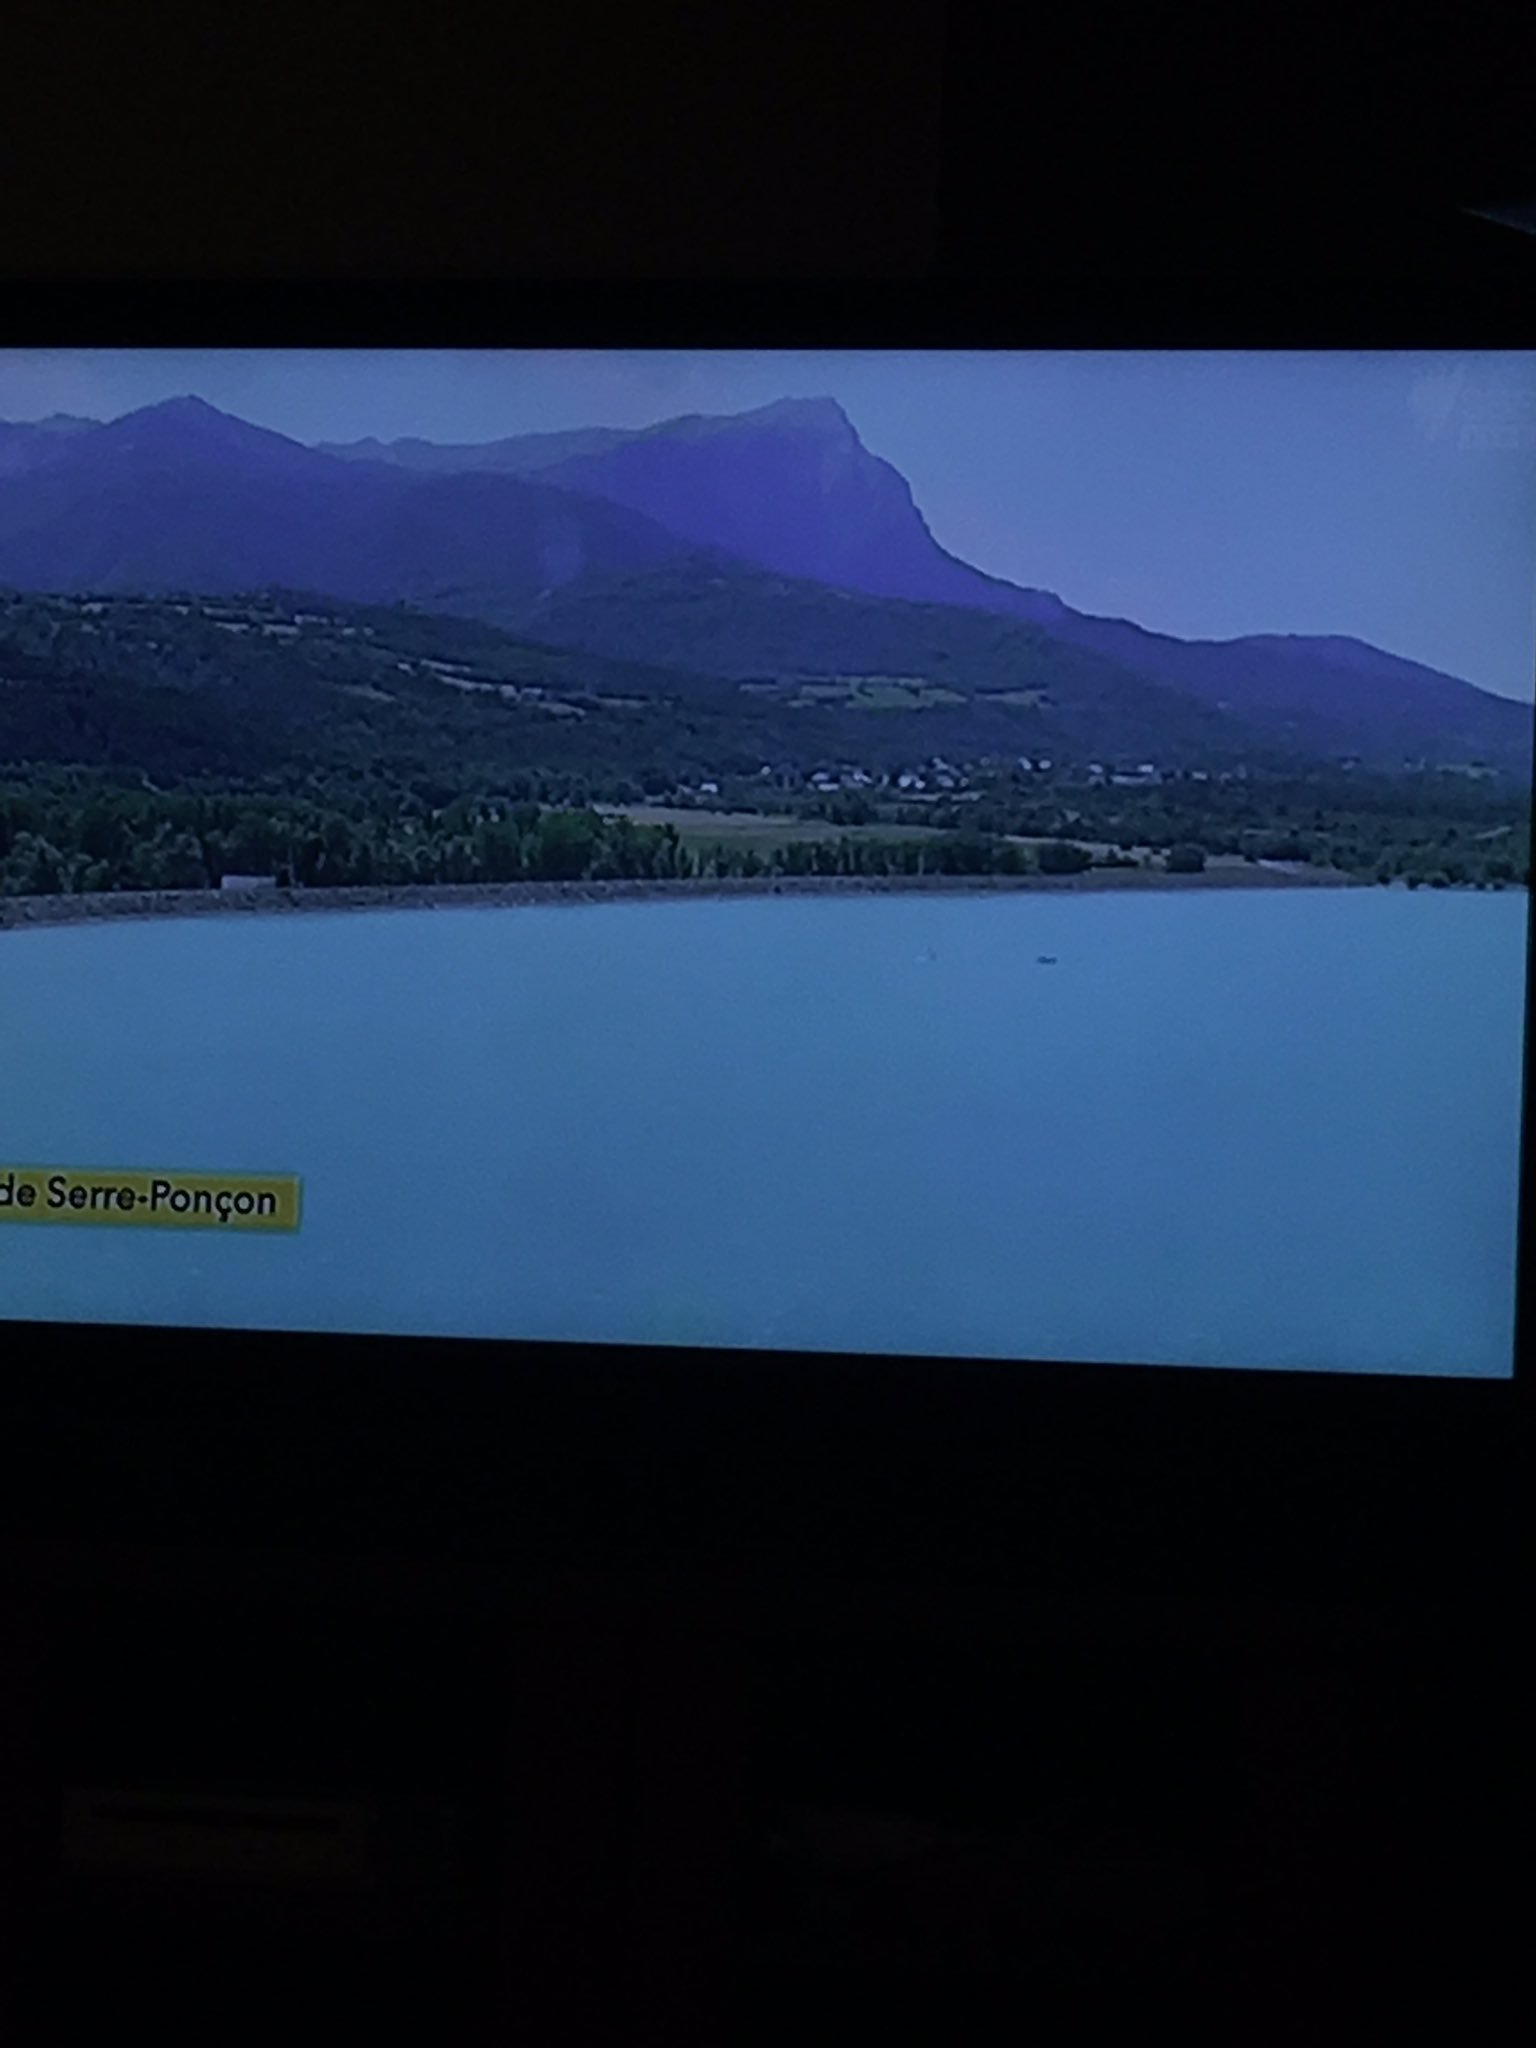 That's a very mineral rich or radioactive lake! #sbstdf https://t.co/rShgVhr4bc